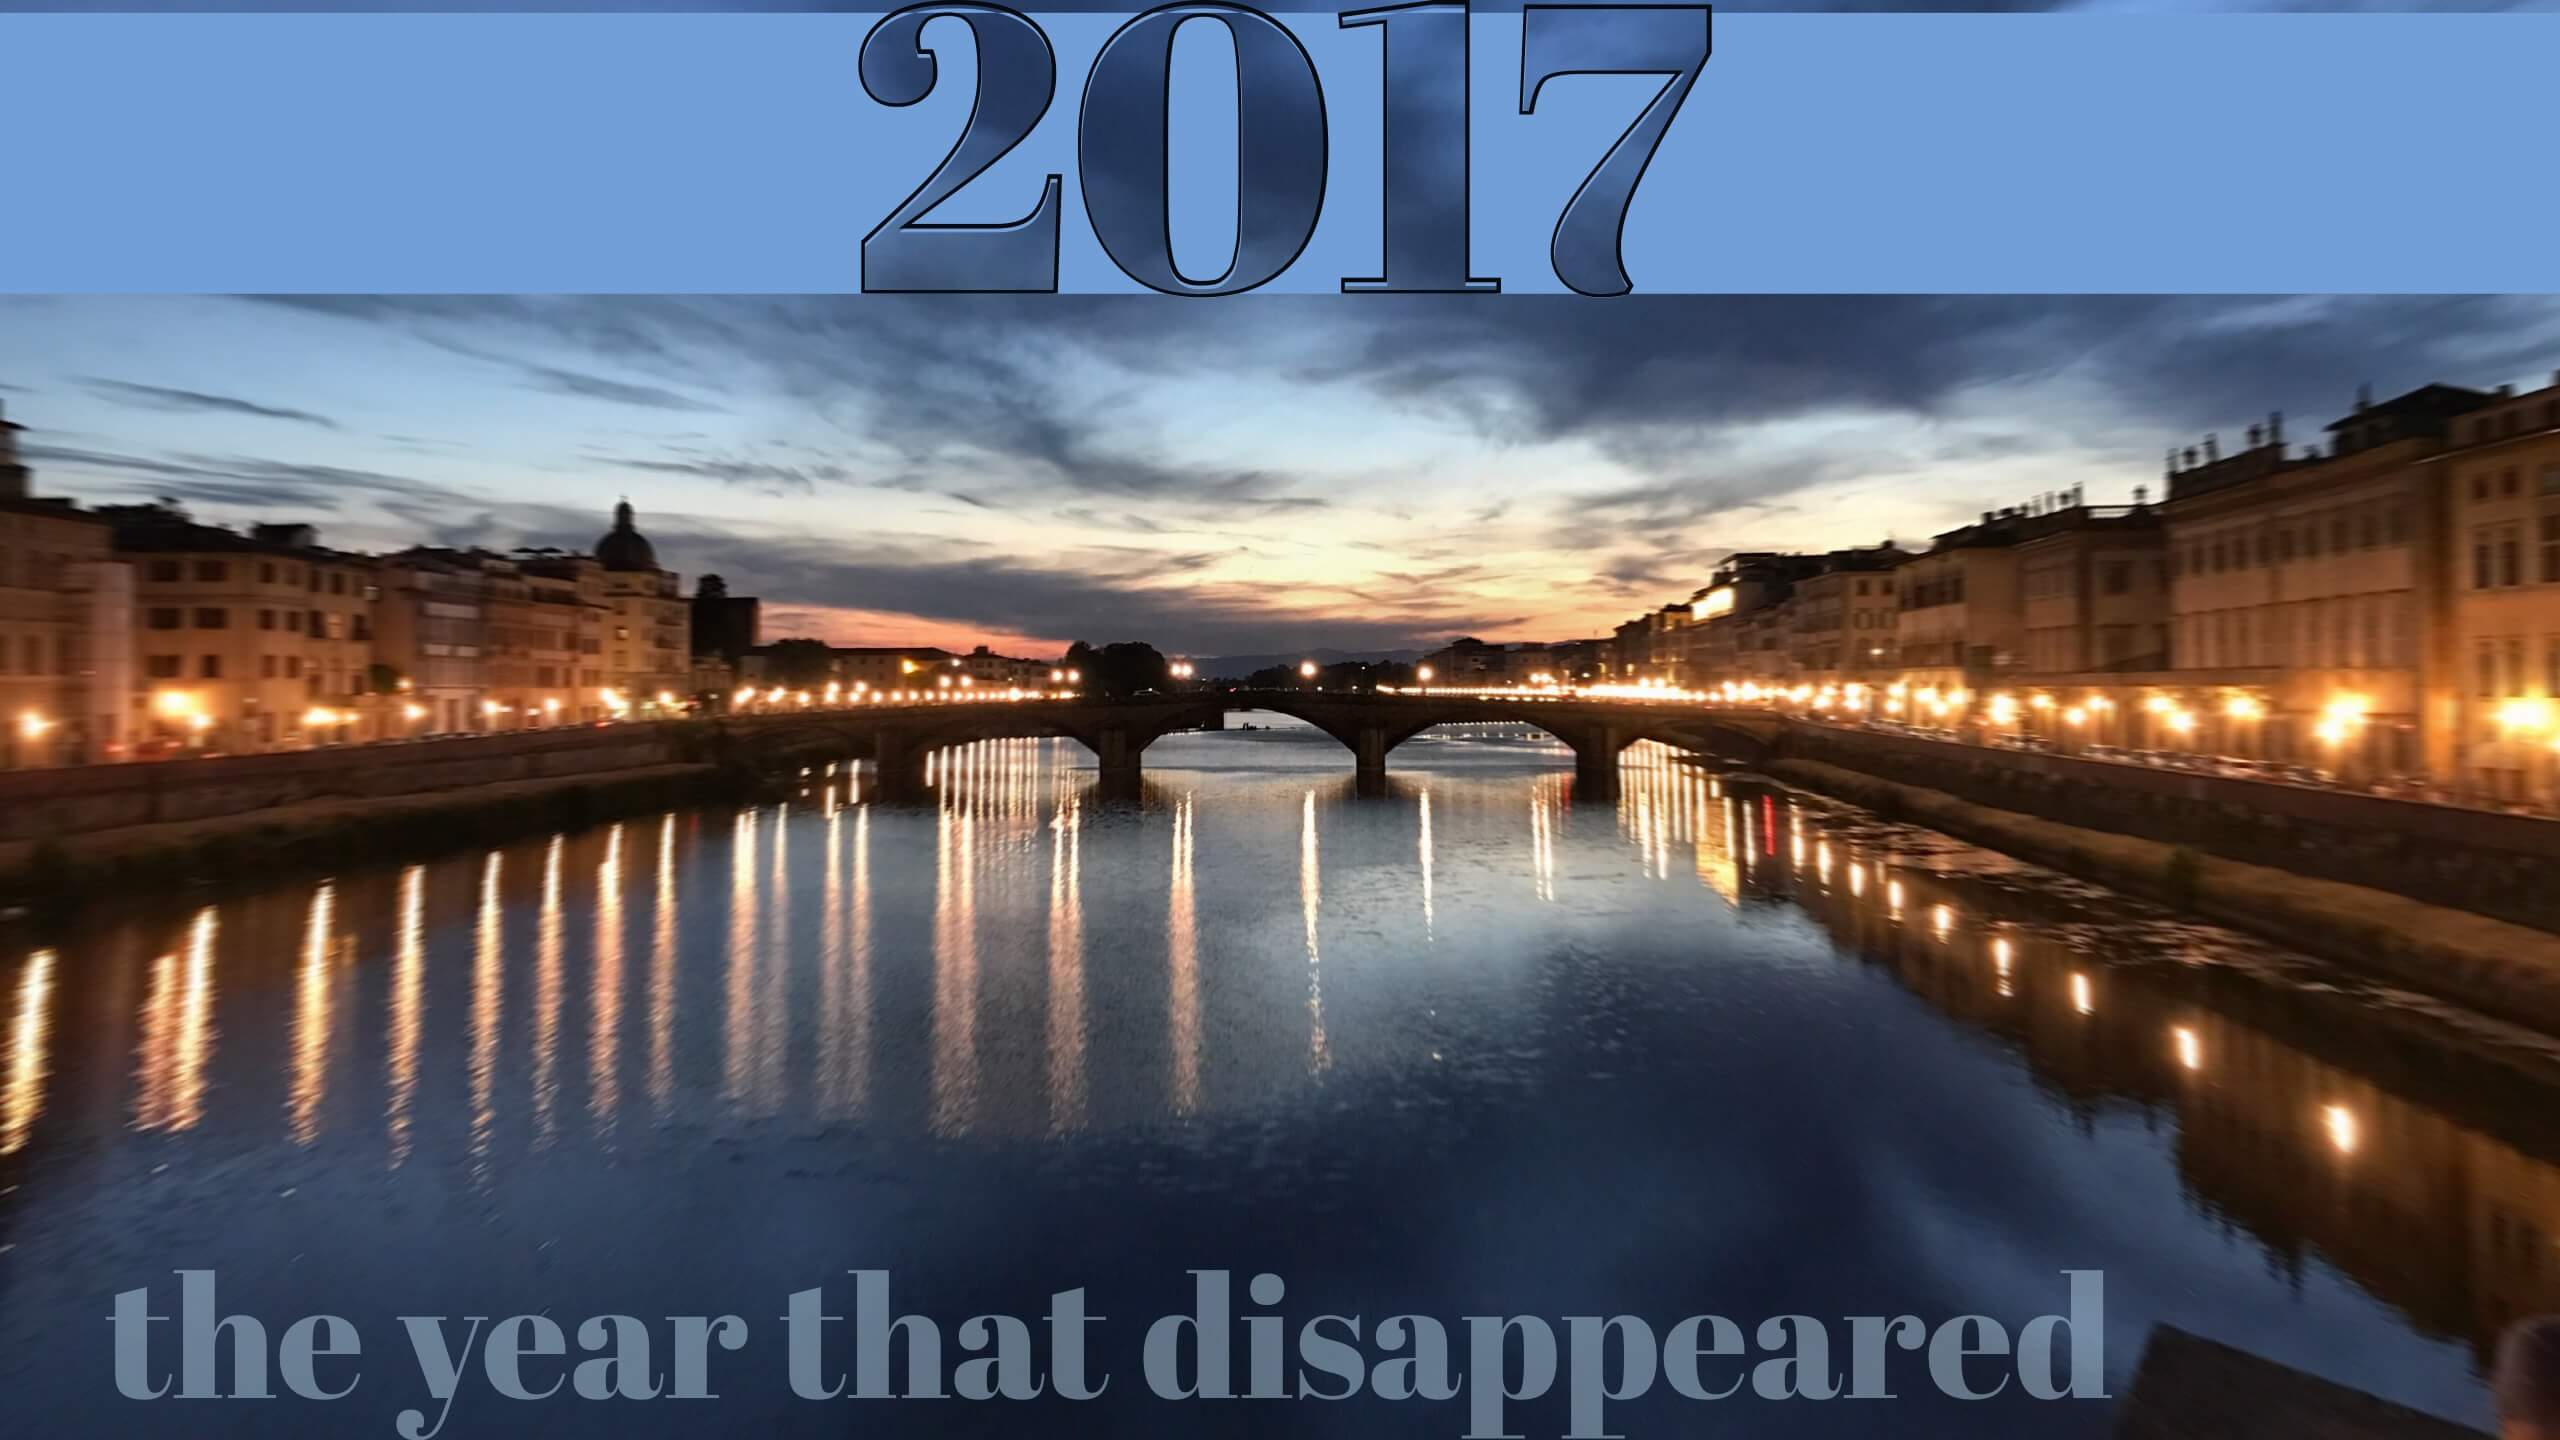 2017 the year that disappeared